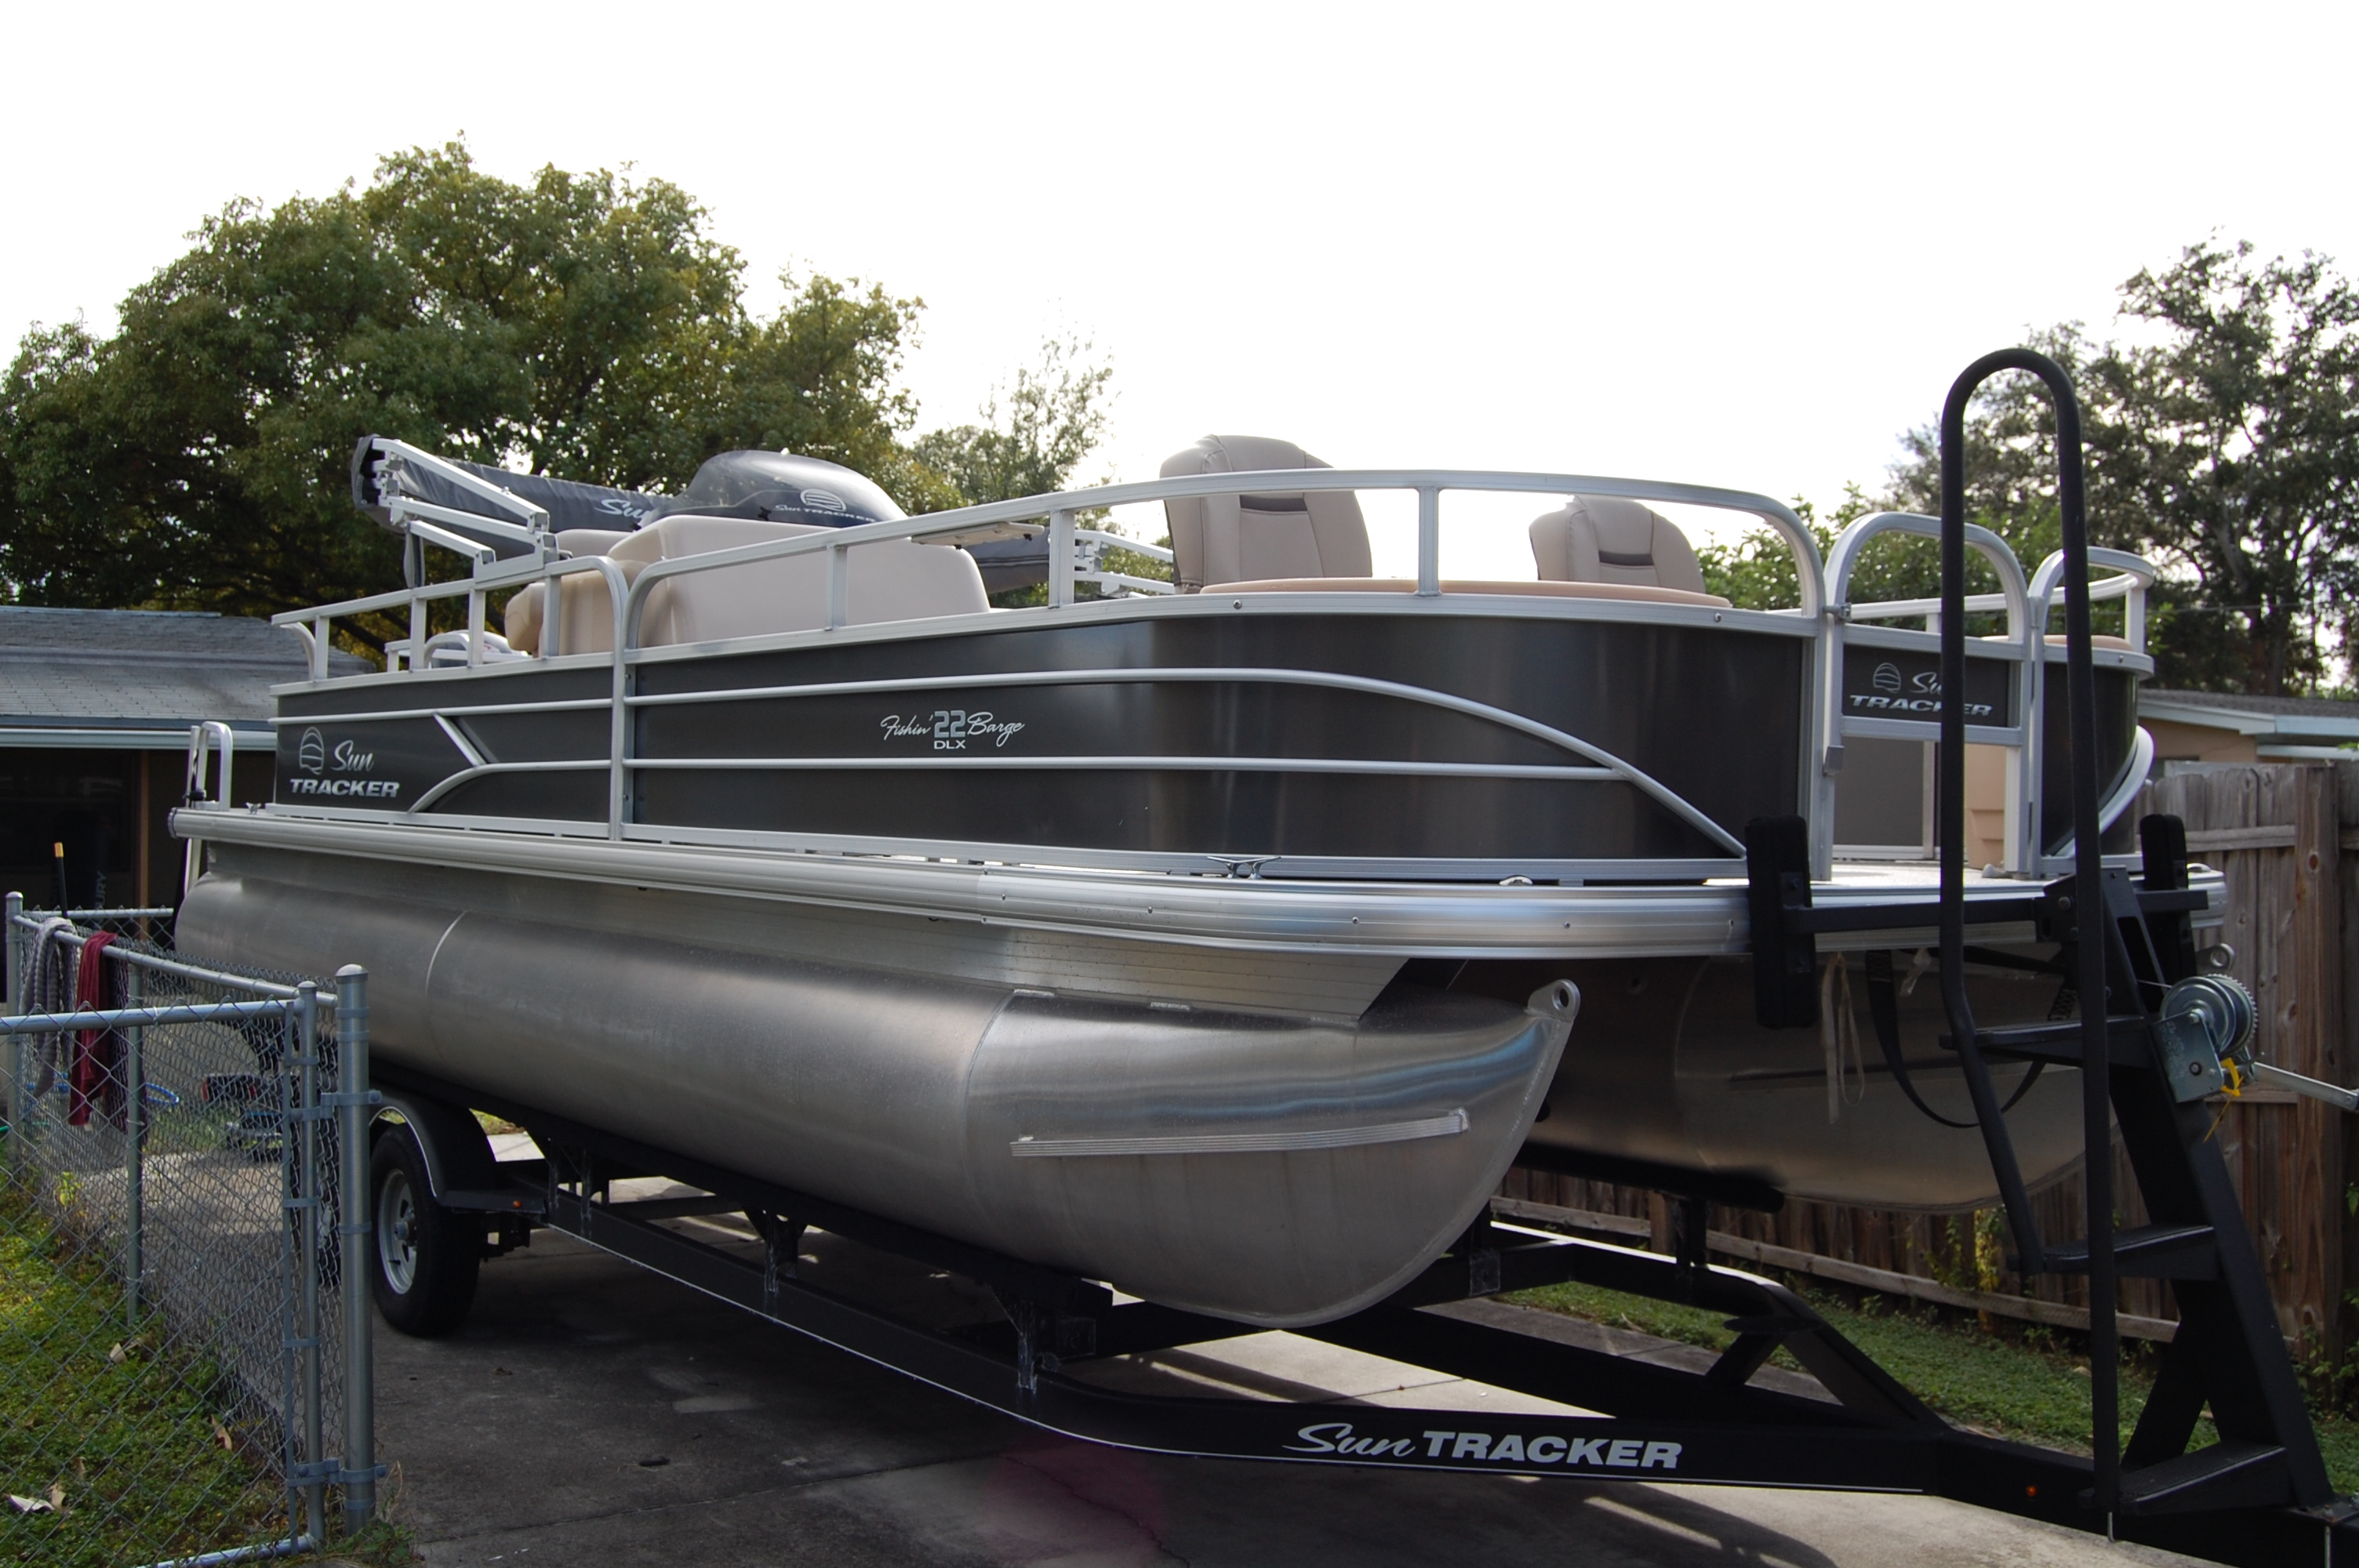 Sun Tracker 22 Fishing Barge 22 DLX